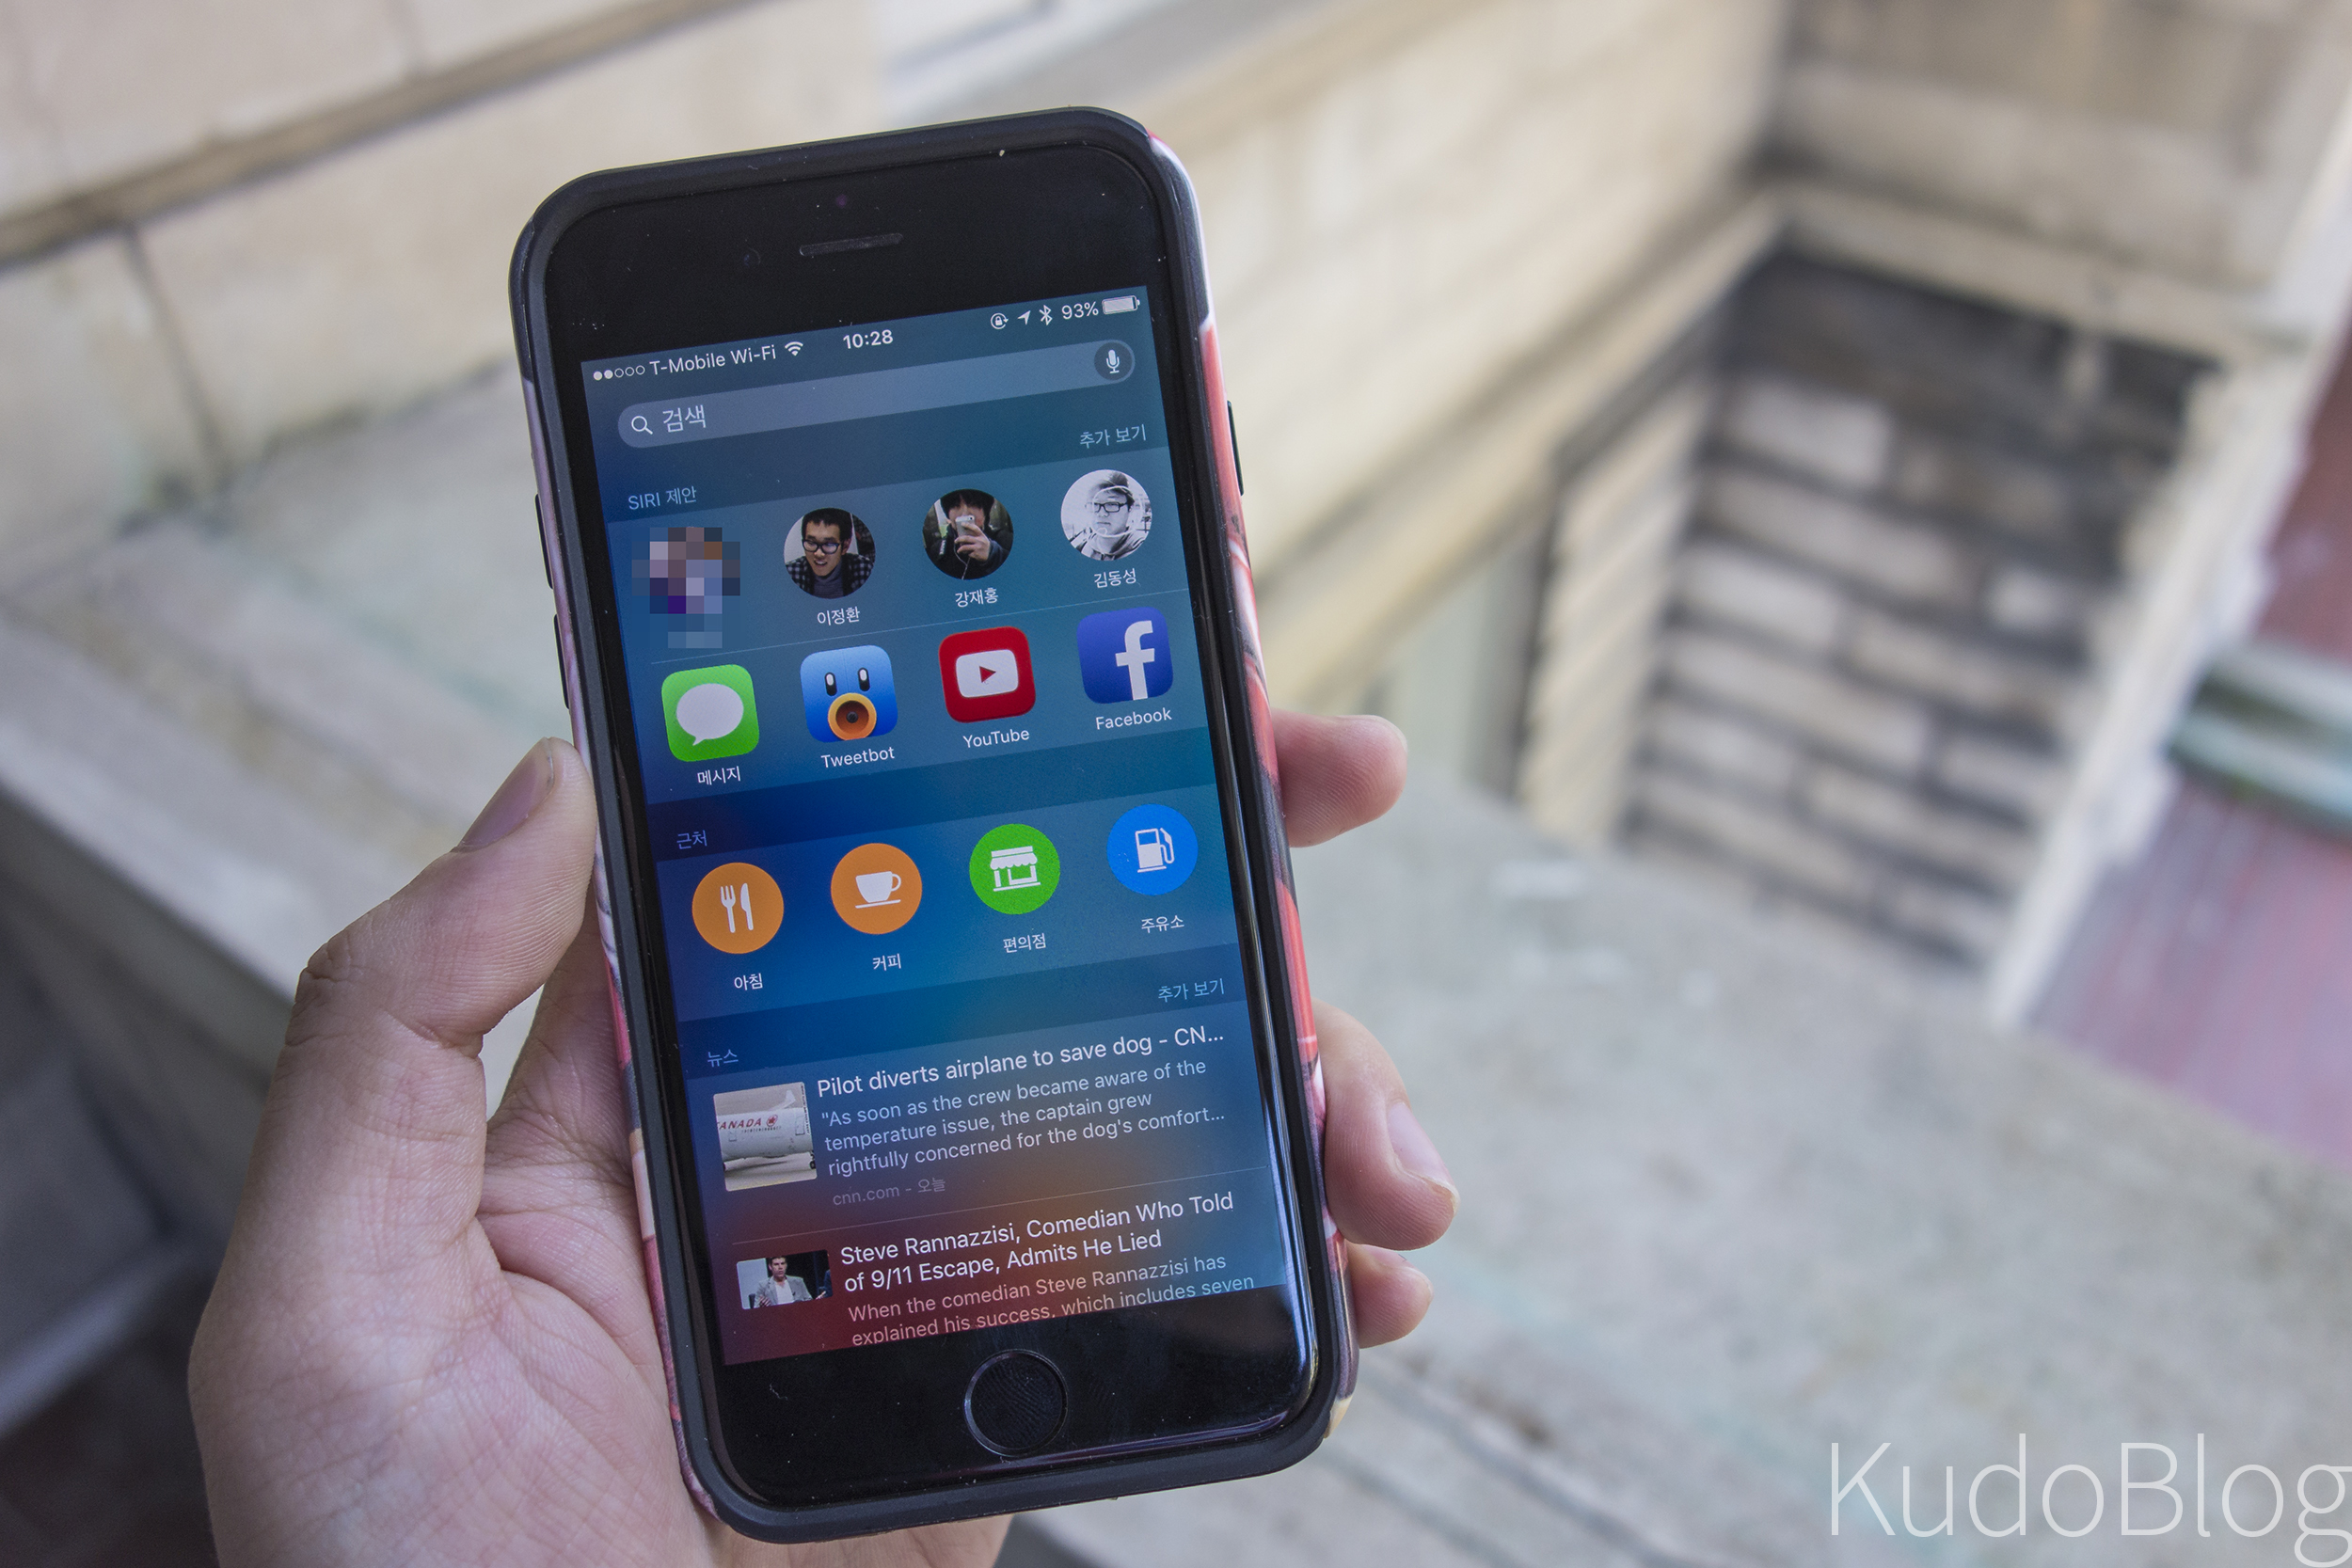 [KudoReview] iOS 9